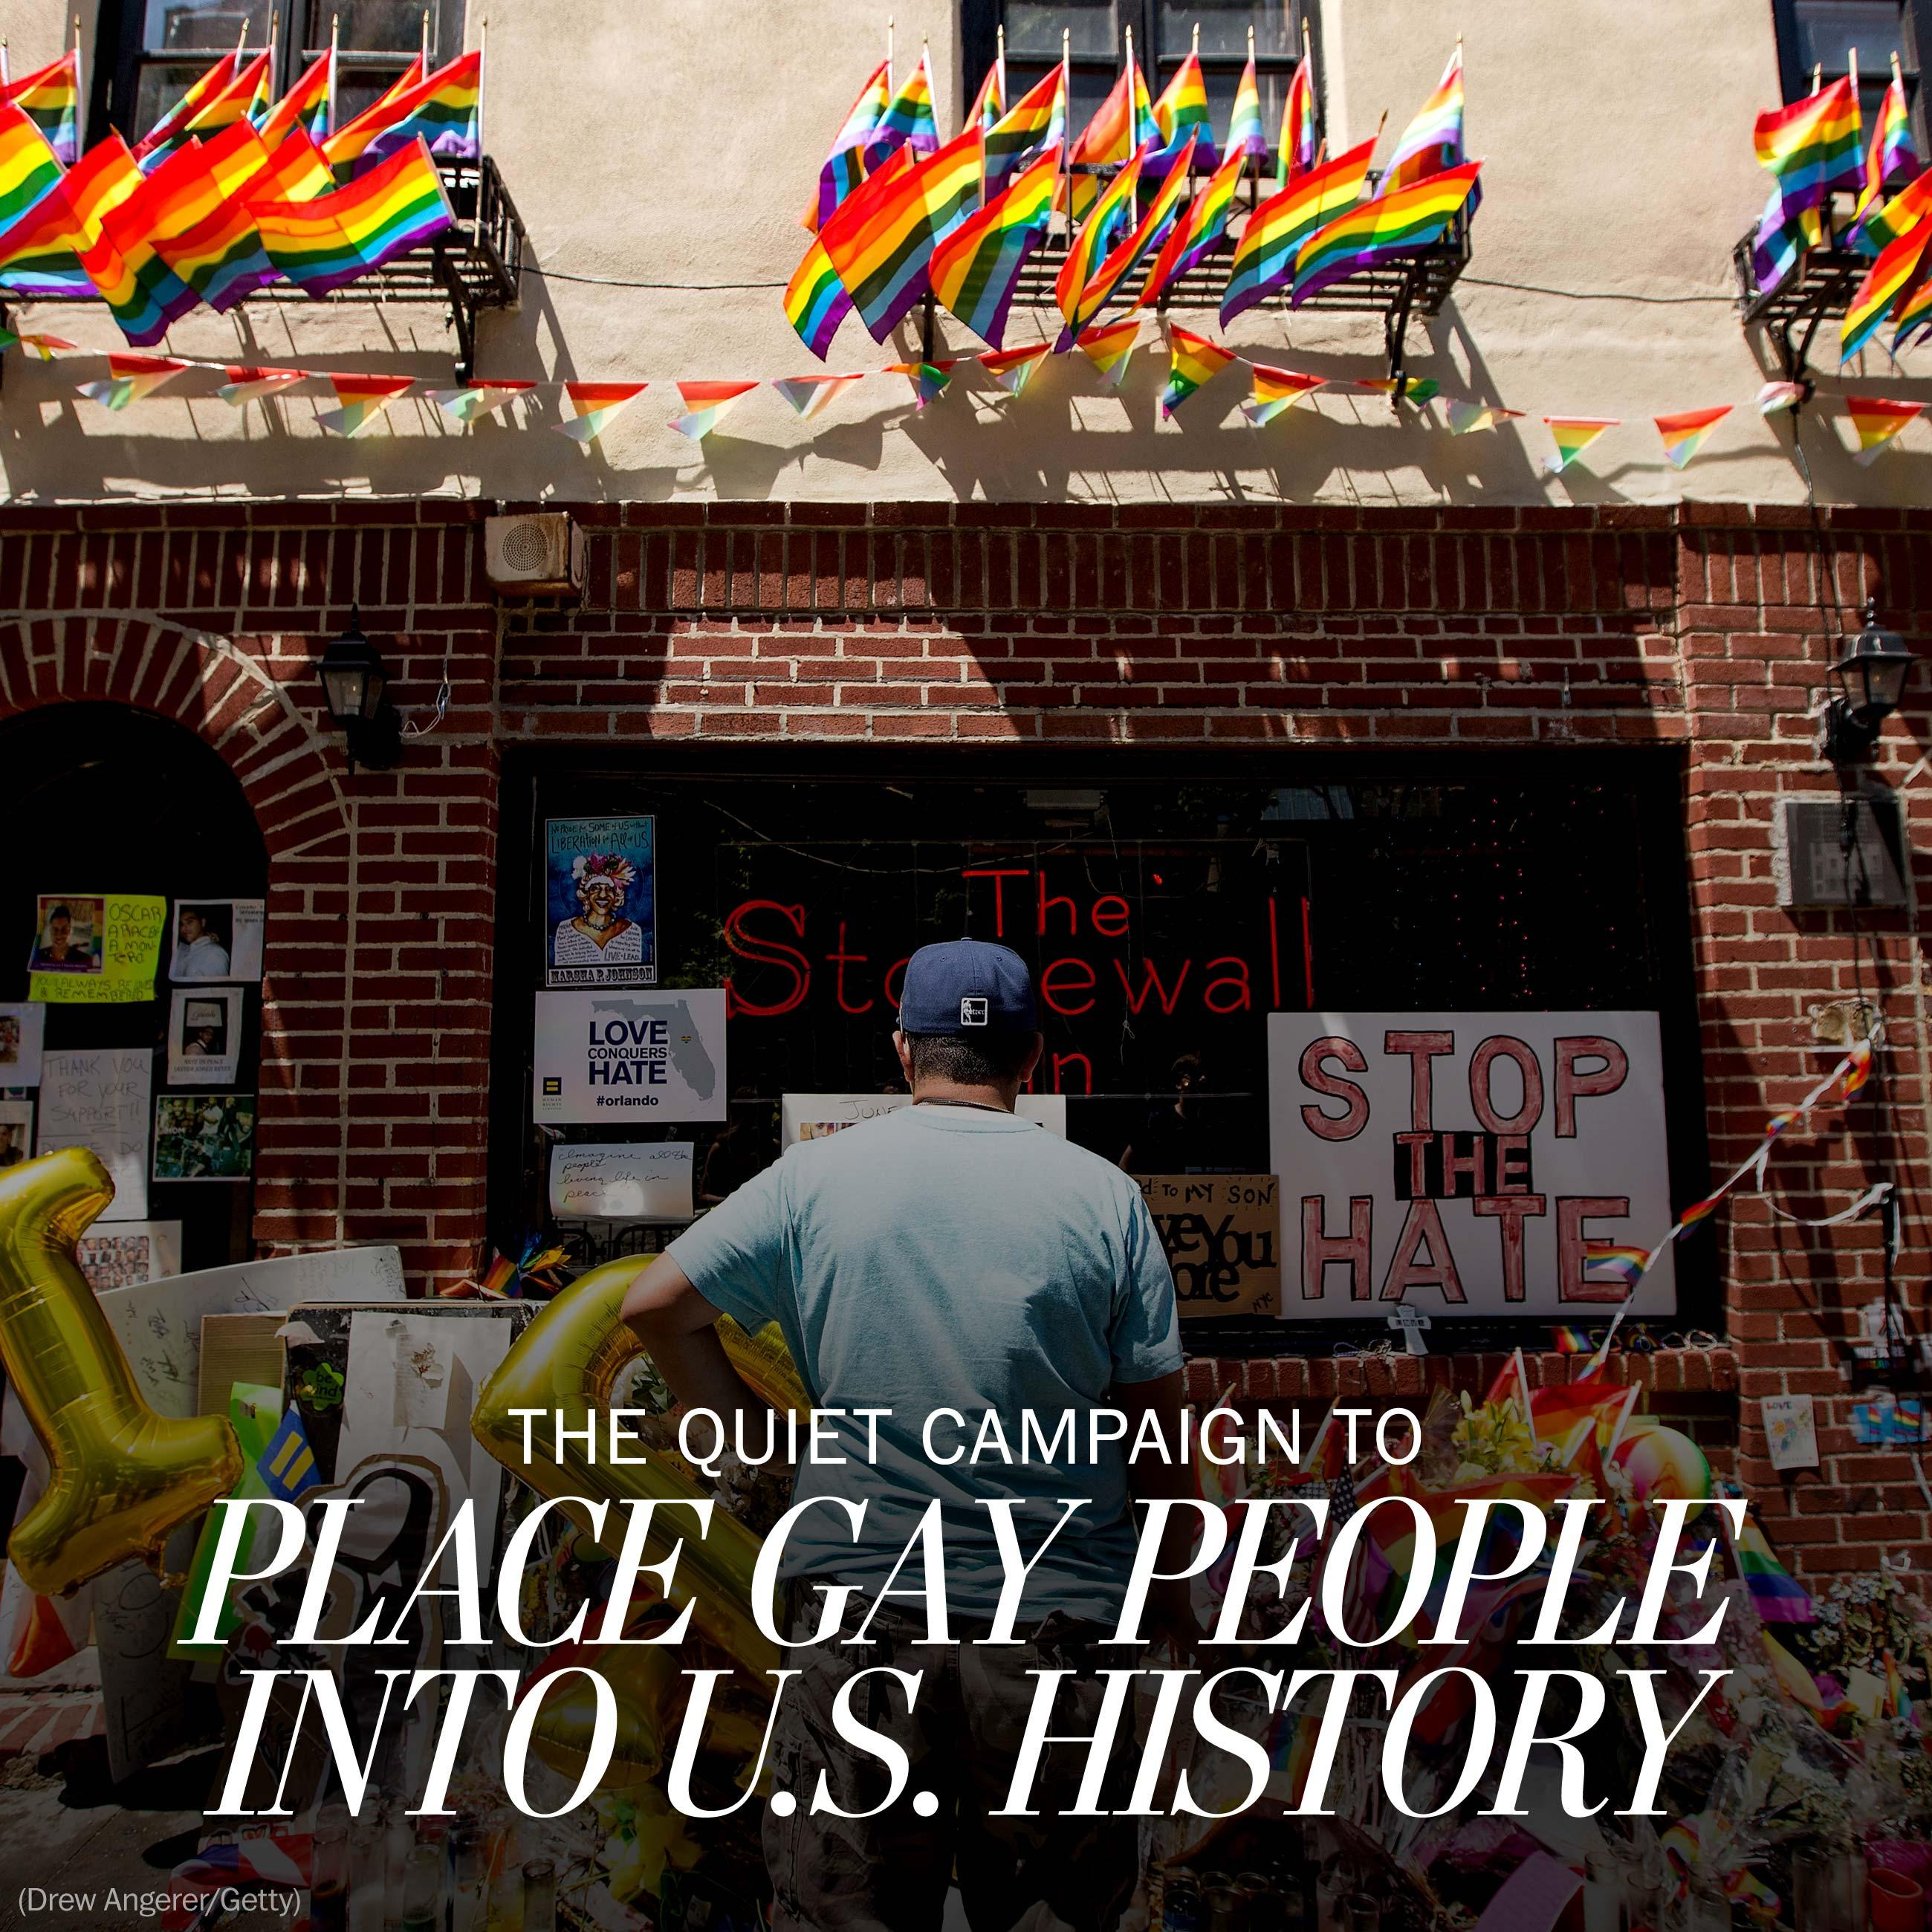 A quiet campaign is placing gay people and their rights struggle in U.S. history